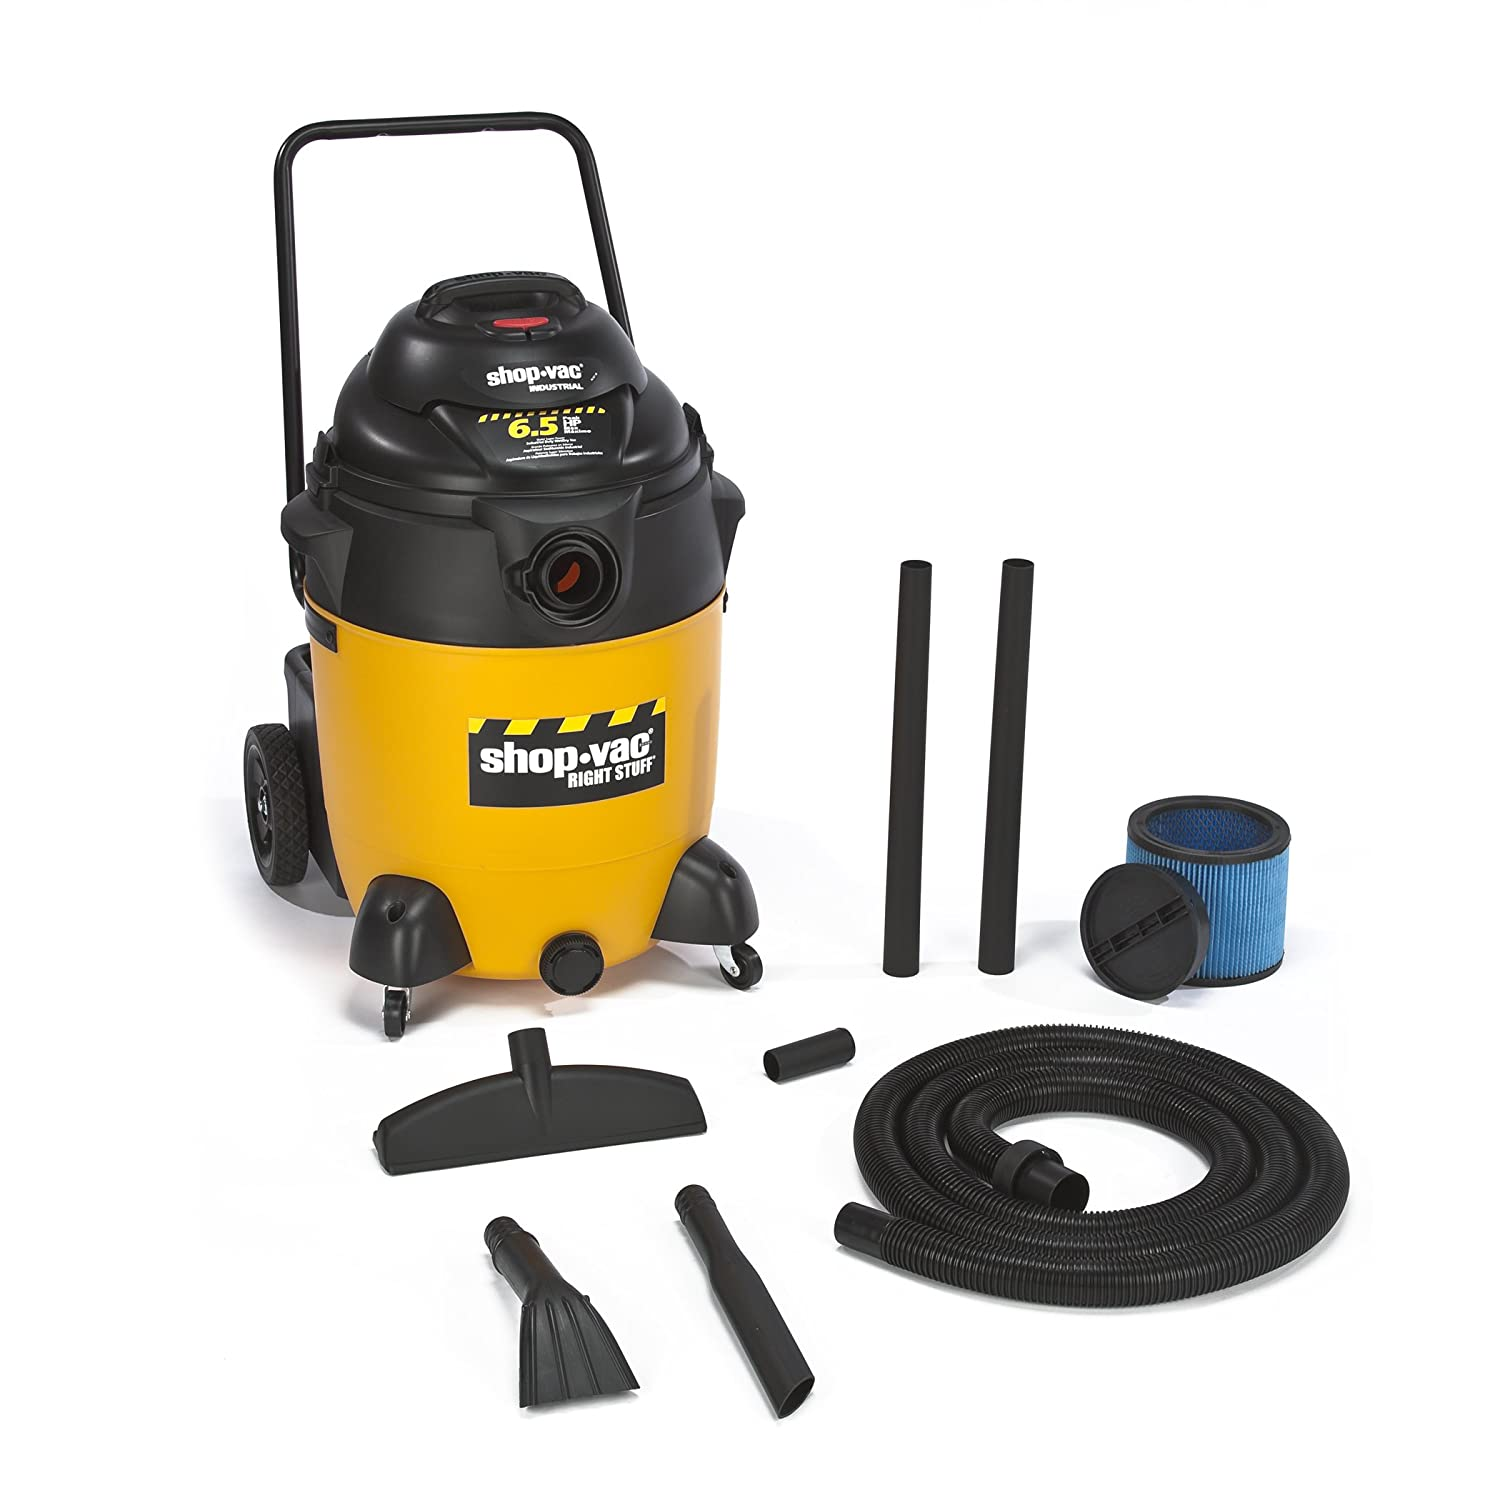 Amazon.com: Shop-Vac 9626010 6.5-Peak Horsepower Right Stuff Wet/Dry Vacuum,  24-Gallon: Home Improvement